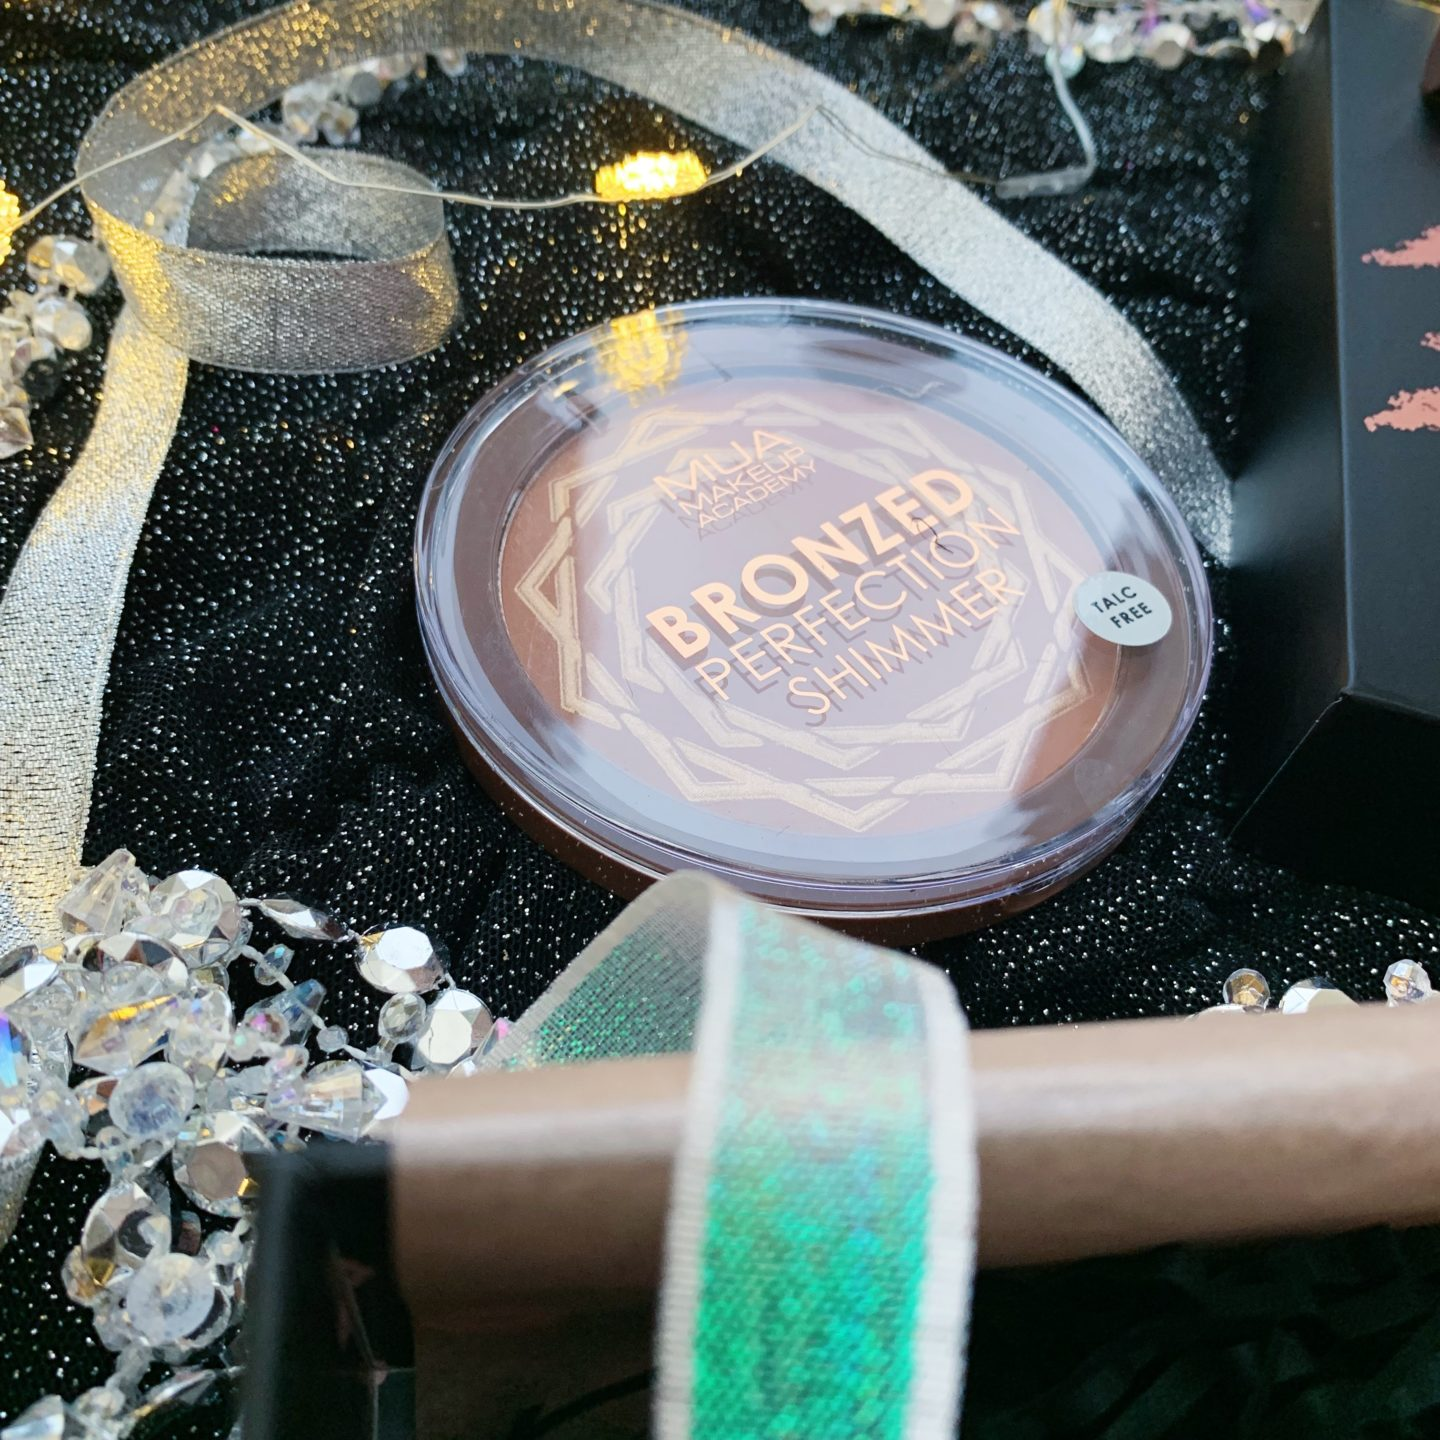 MUA Bronzed Perfection Shimmer - Limited Edition Black Friday Glossybox - Miss Boux